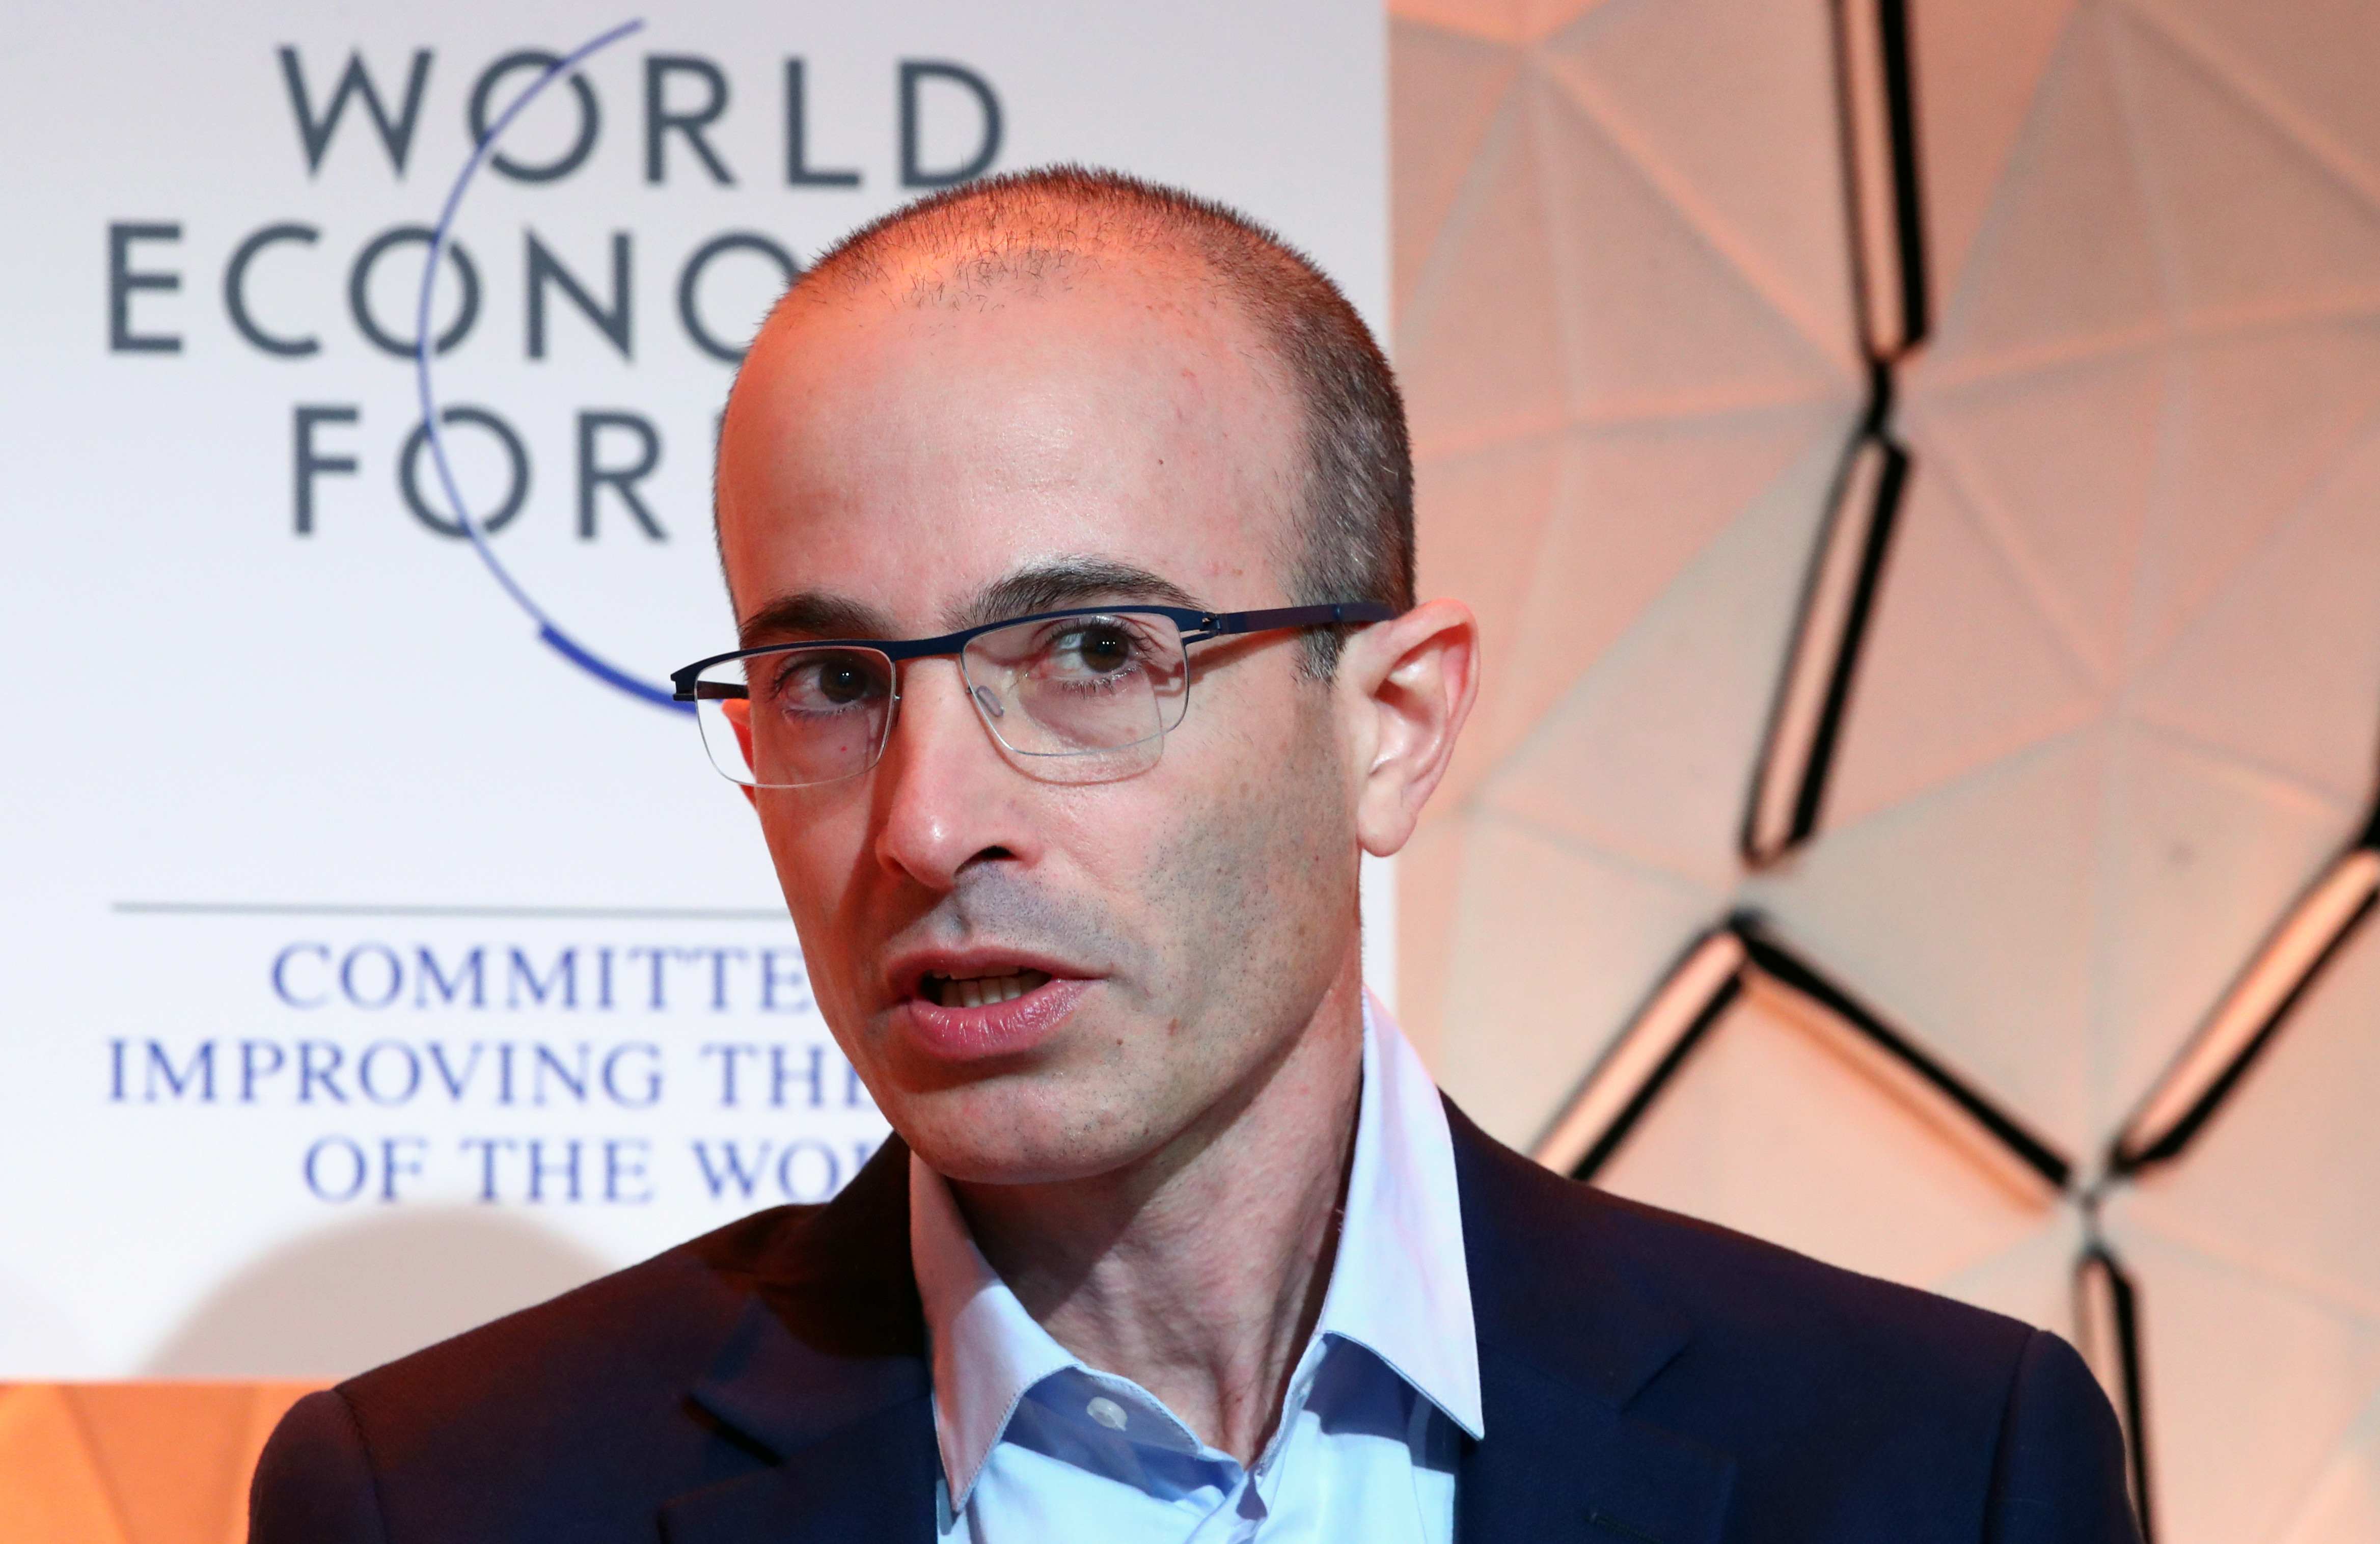 Yuval Noah Harari of Hebrew University of Jerusalem attends a session at the 50th World Economic Forum (WEF) annual meeting in Davos, Switzerland, January 21, 2020. REUTERS/Denis Balibouse - RC29KE90M17D